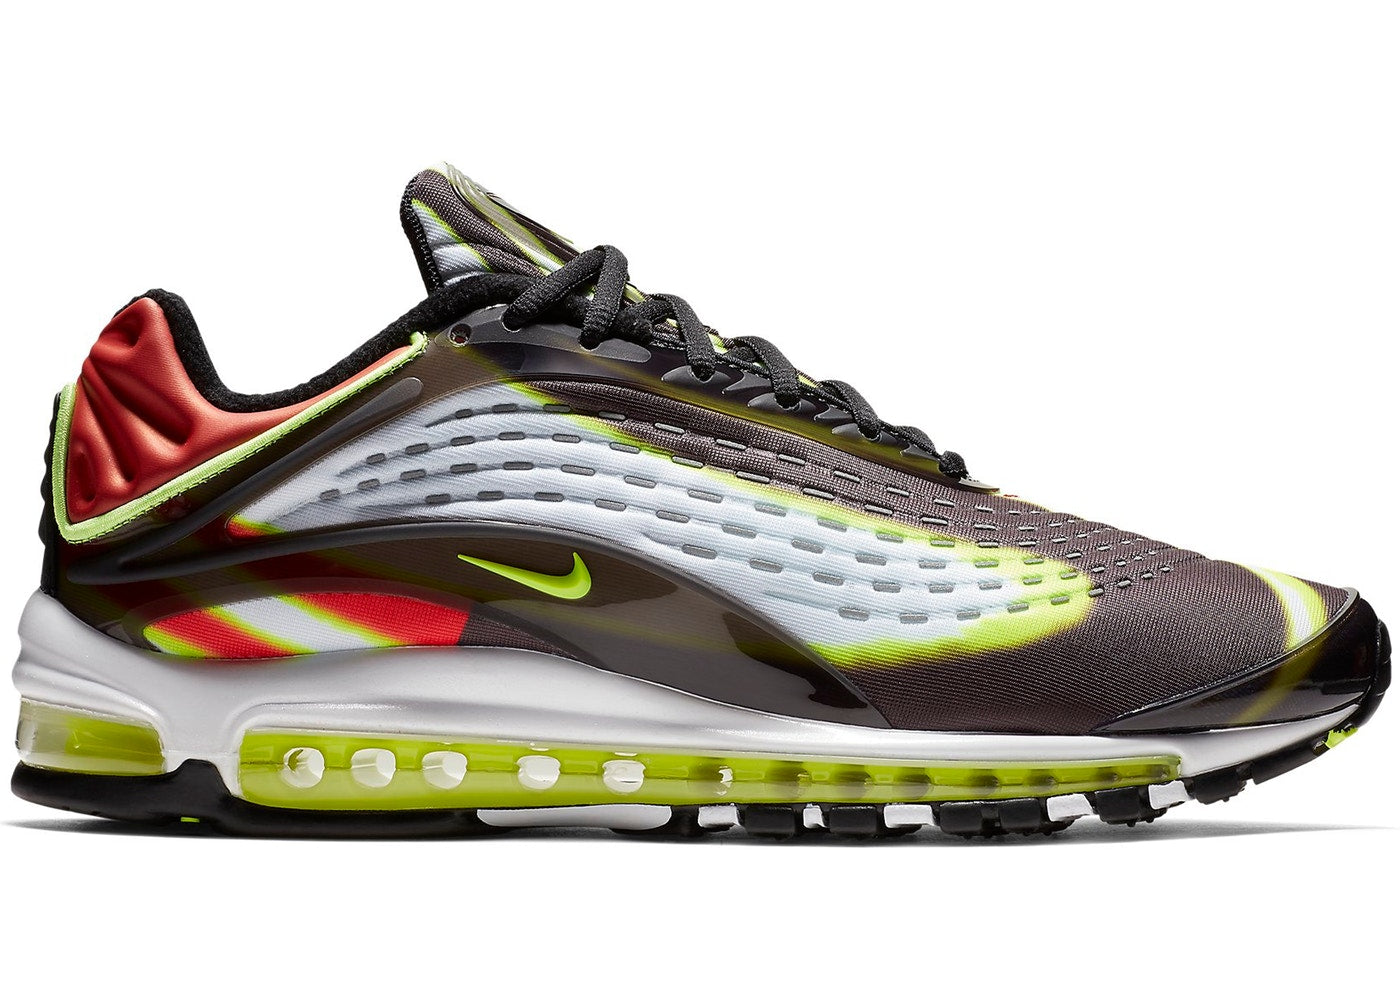 536670a27d Details about Mens Nike Air Max Deluxe Volt Habanero Red Black White  AJ7831-003